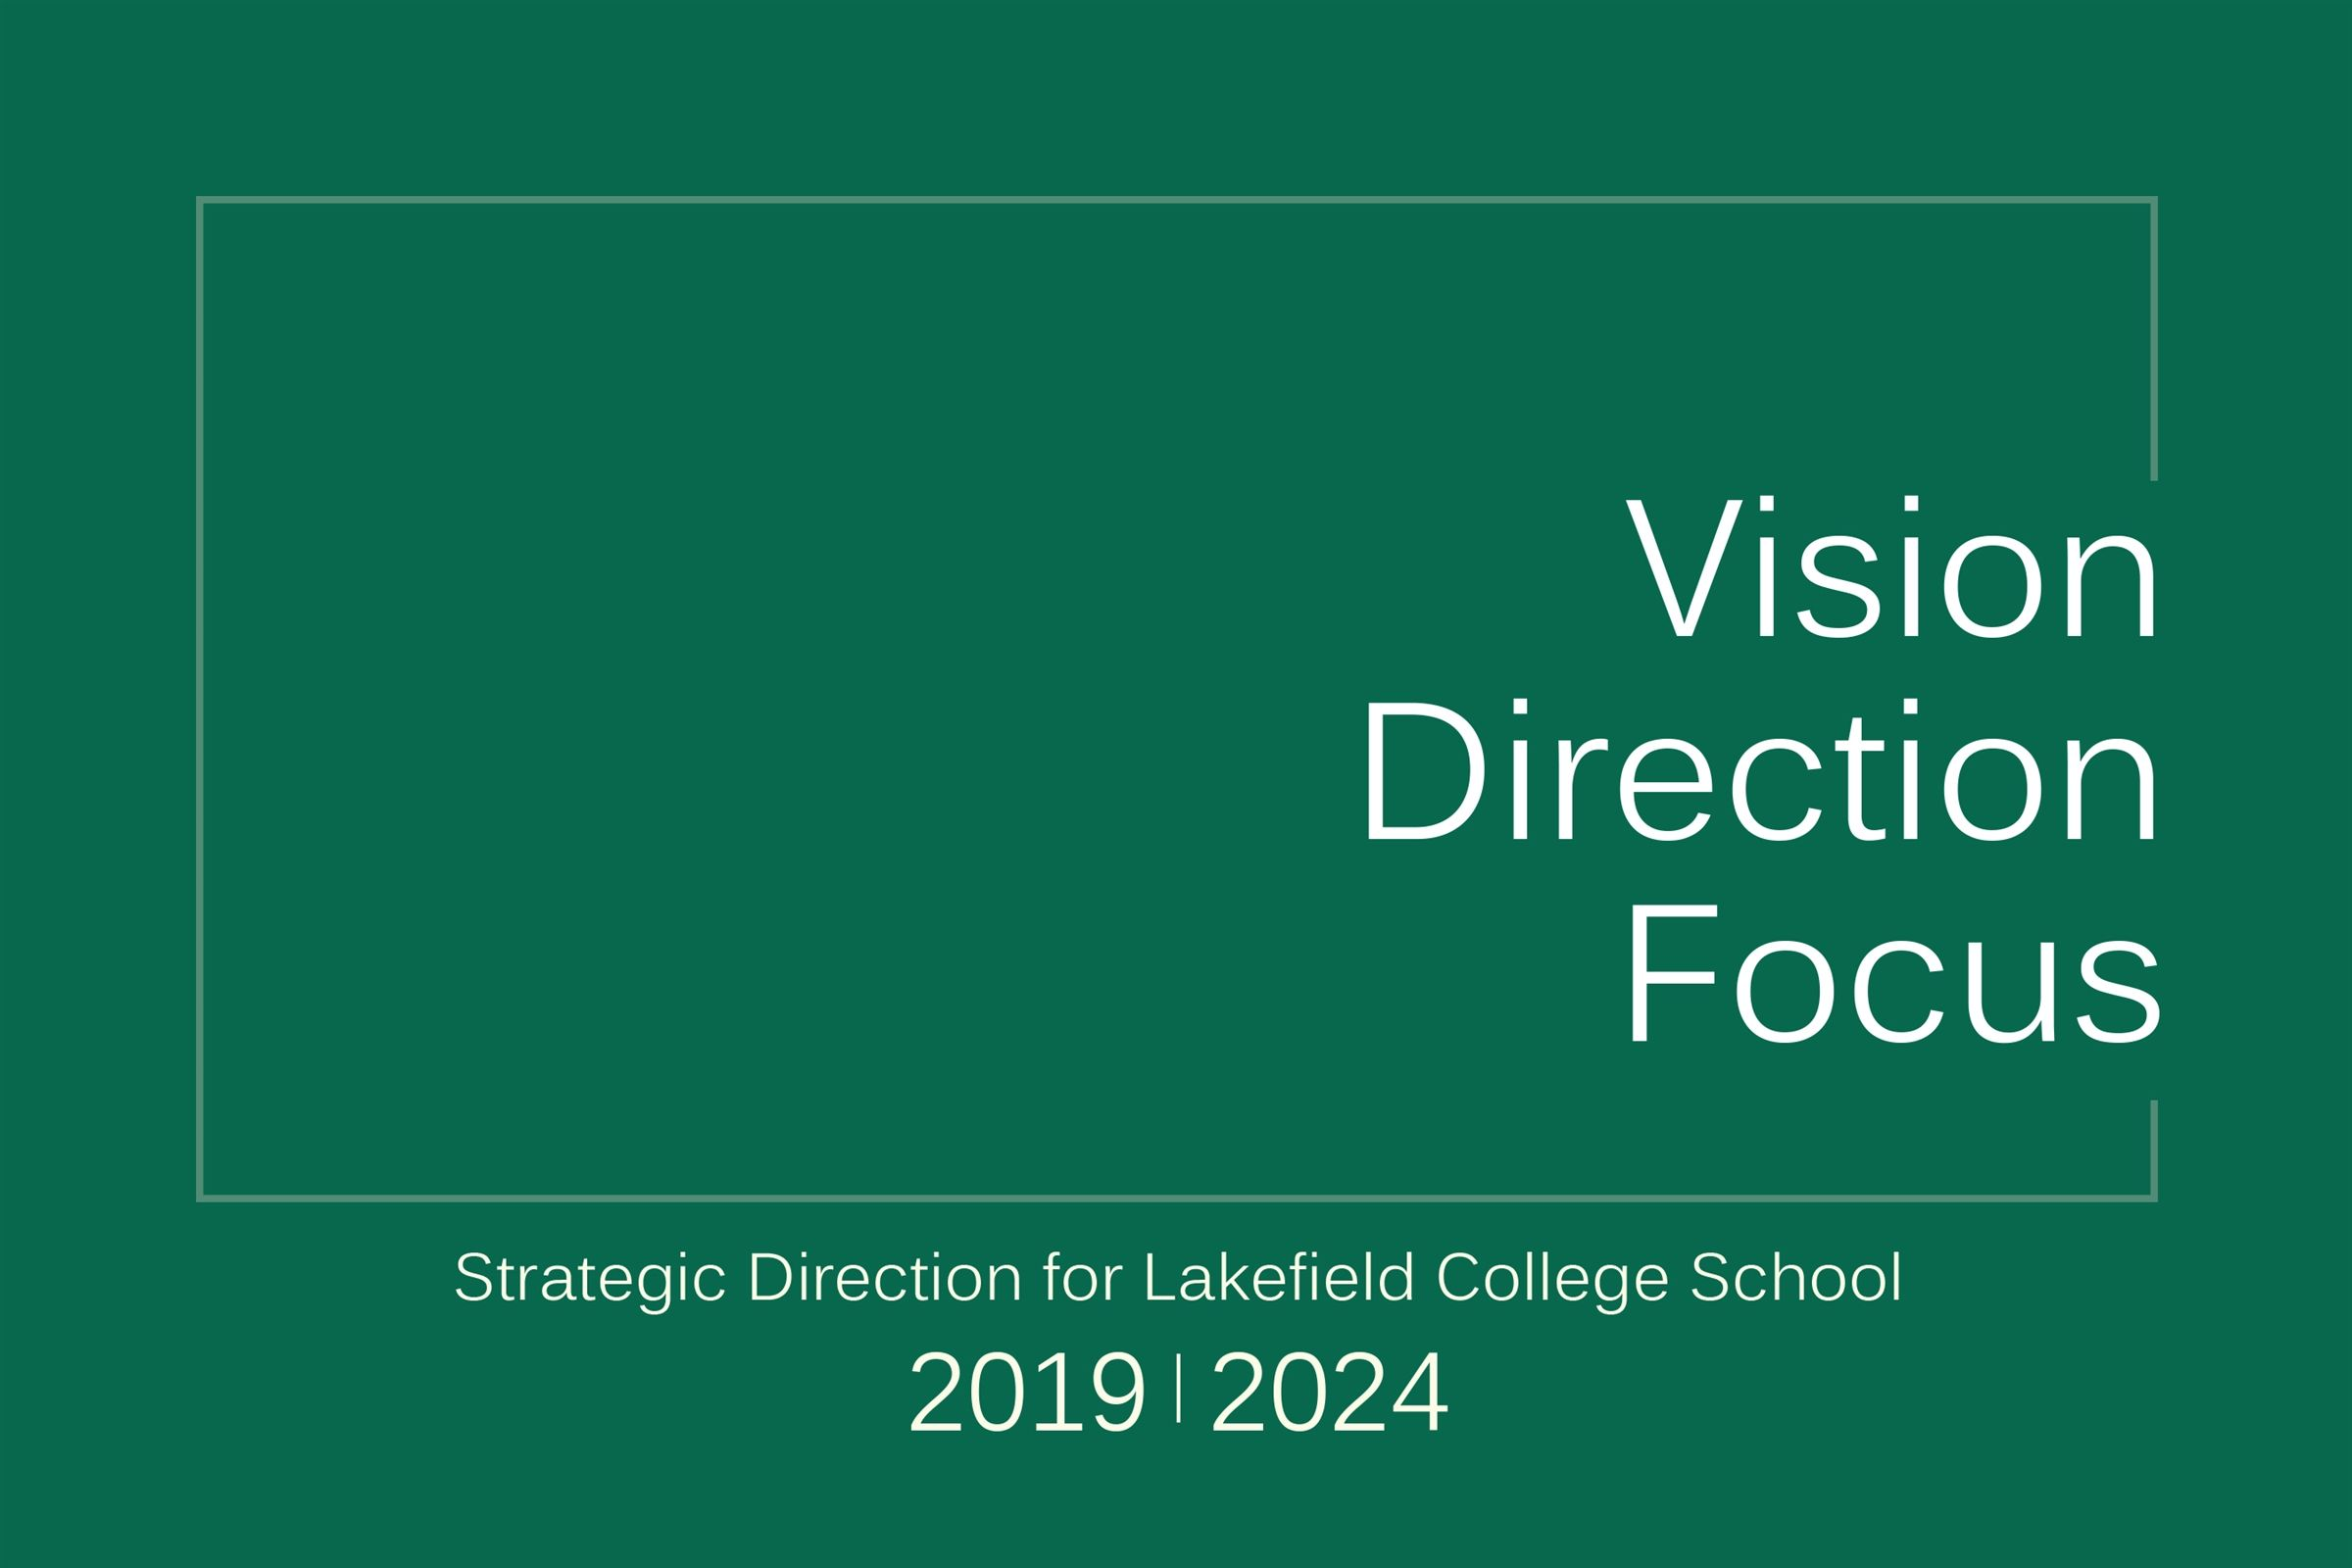 Vision. Direction. Focus.